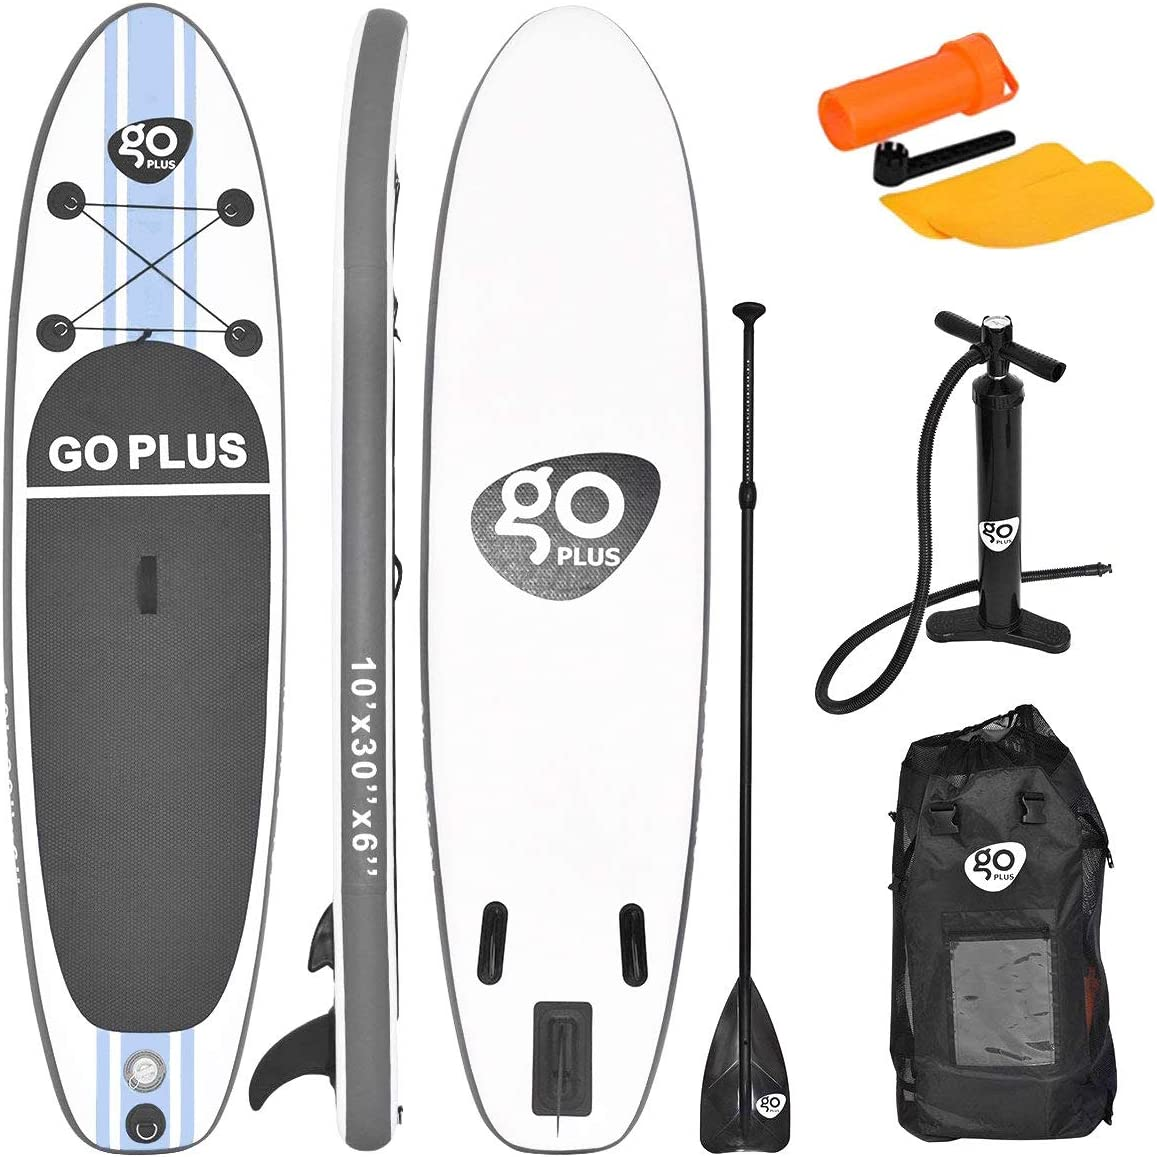 Goplus Inflatable Stand up Paddle Board Surfboard SUP Board with Adjustable Paddle Carry Bag Manual Pump Repair Kit Removable Fin for All Skill Levels, 6 Thick